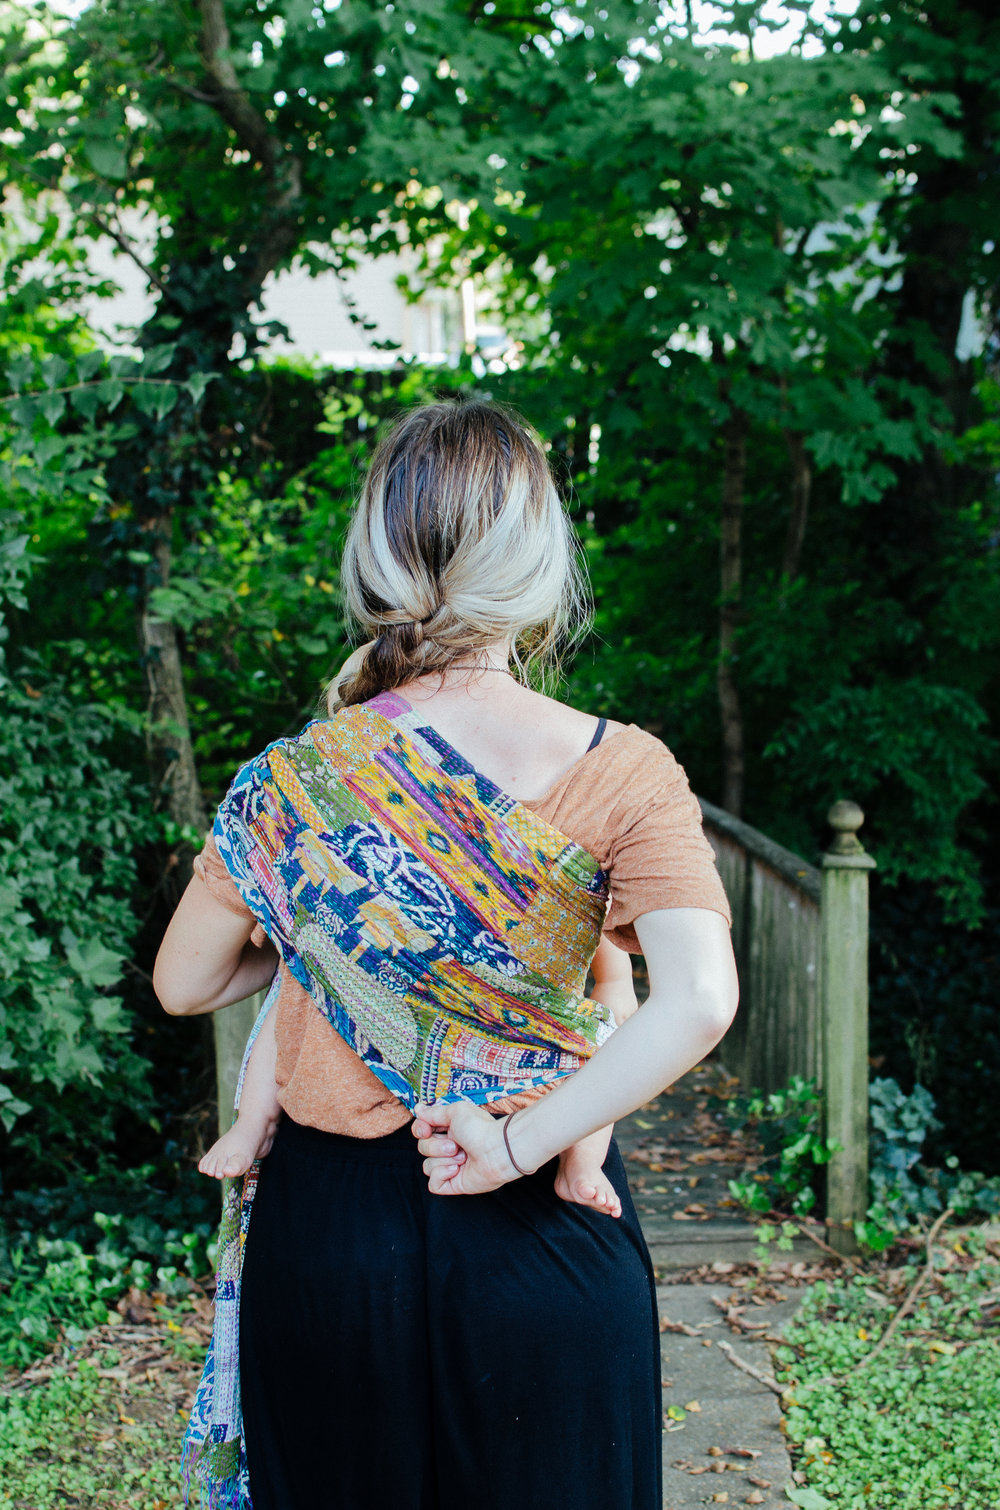 Make sure to fully spread the sling across your back for proper comfort and support.